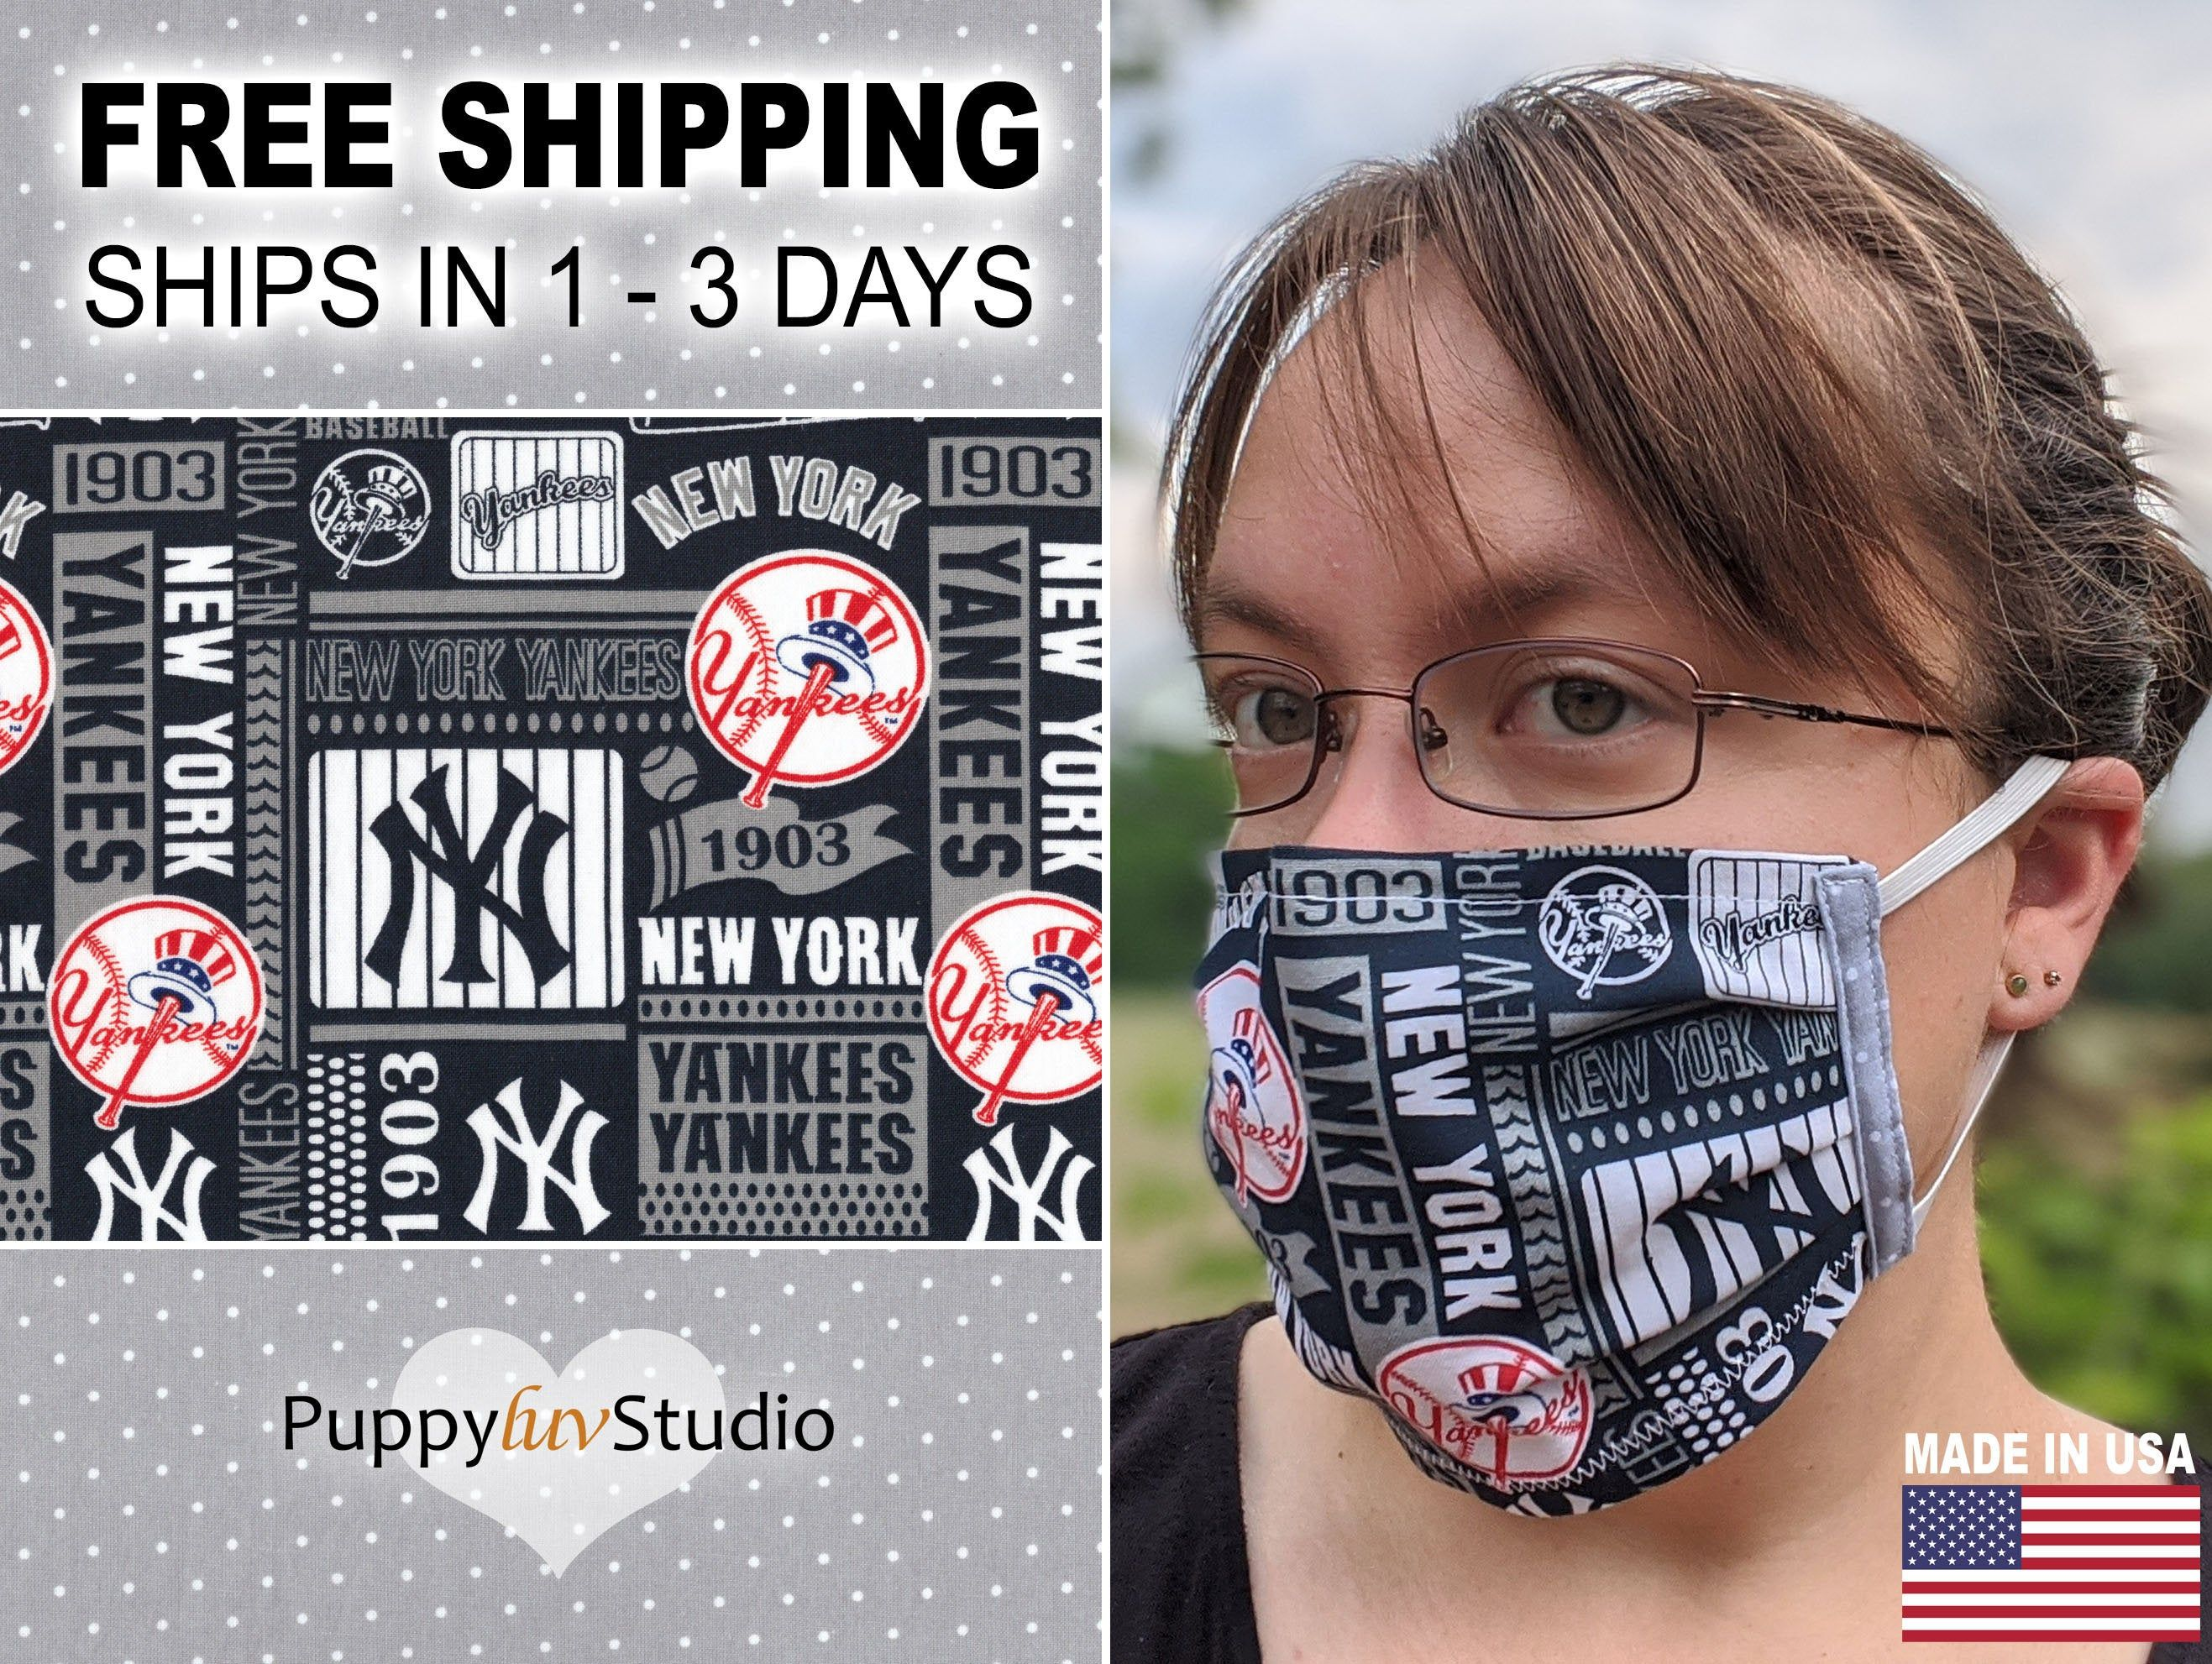 New York Yankees Cotton Face Mask With Nose Wire And Filter Etsy In 2020 Face Mask New York Yankees Face